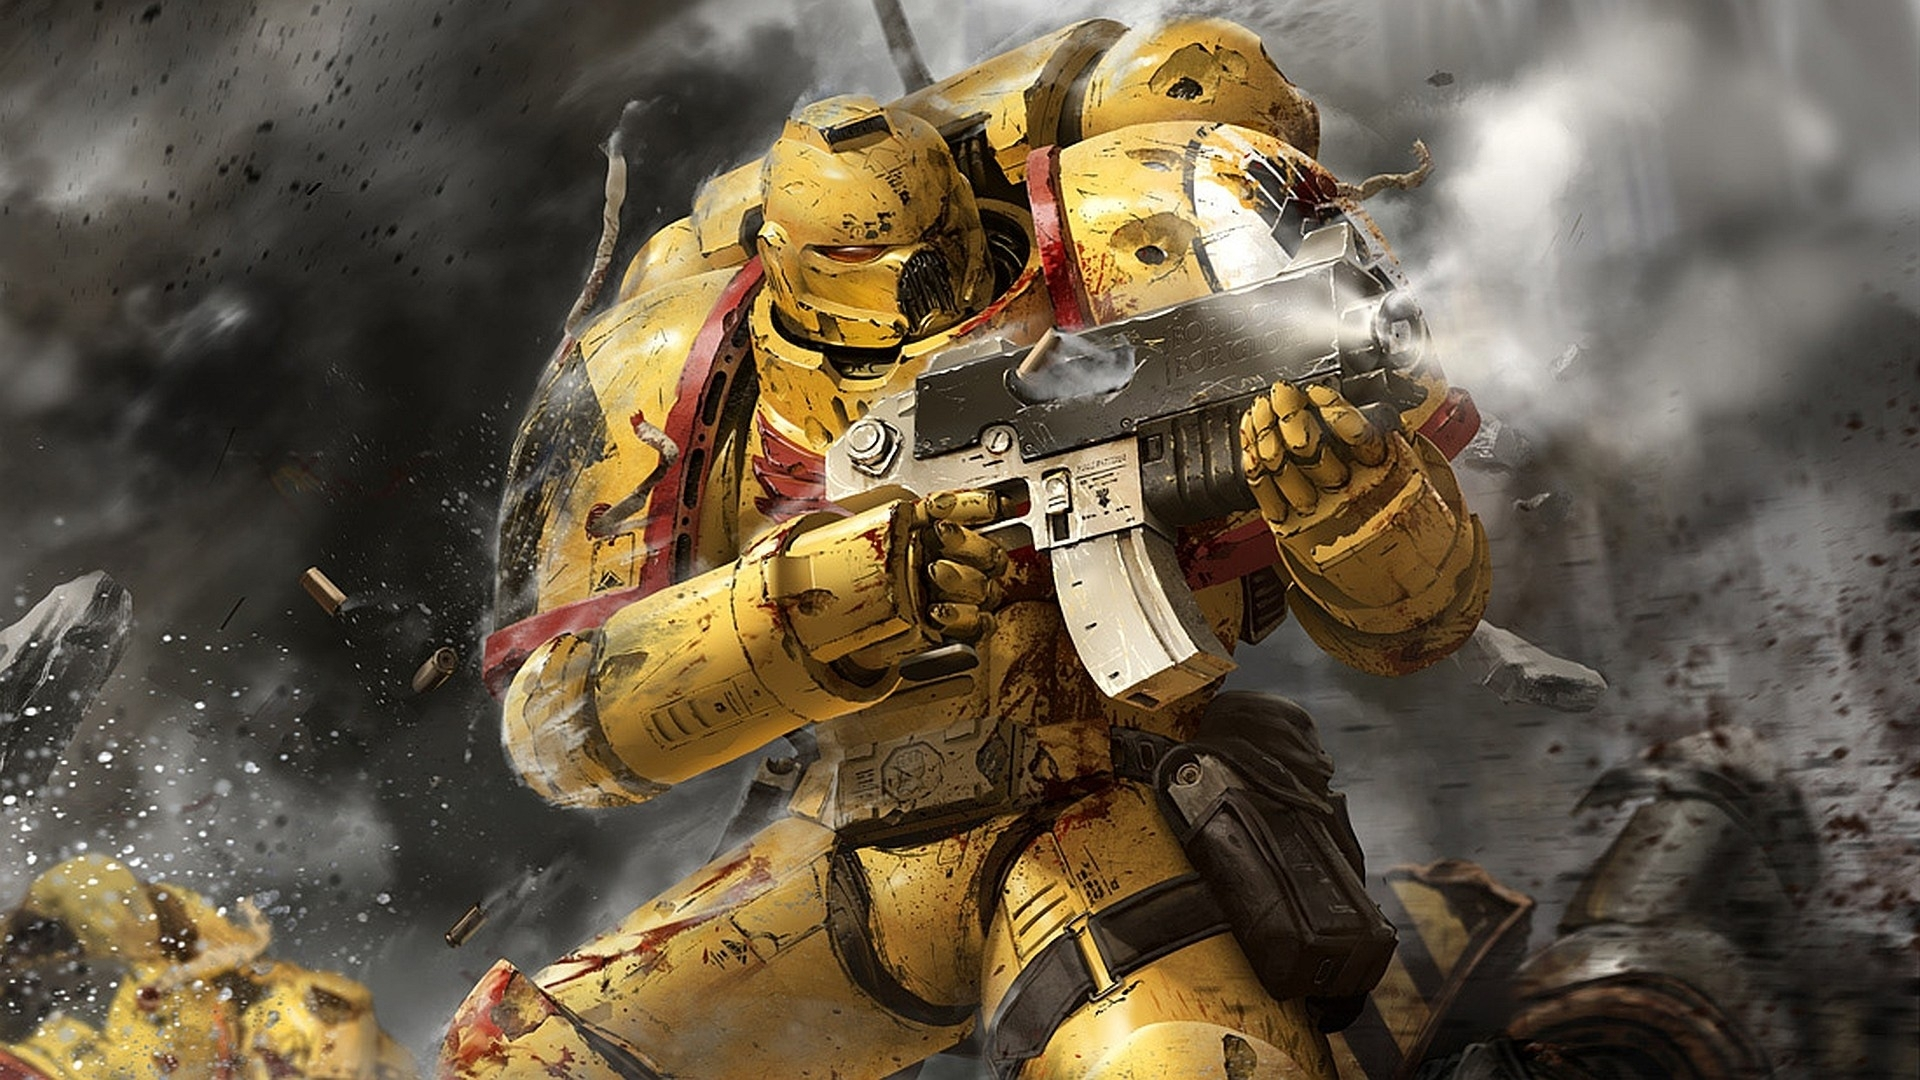 wallpaper : battle, warhammer 40 000, toy, machine, space marines